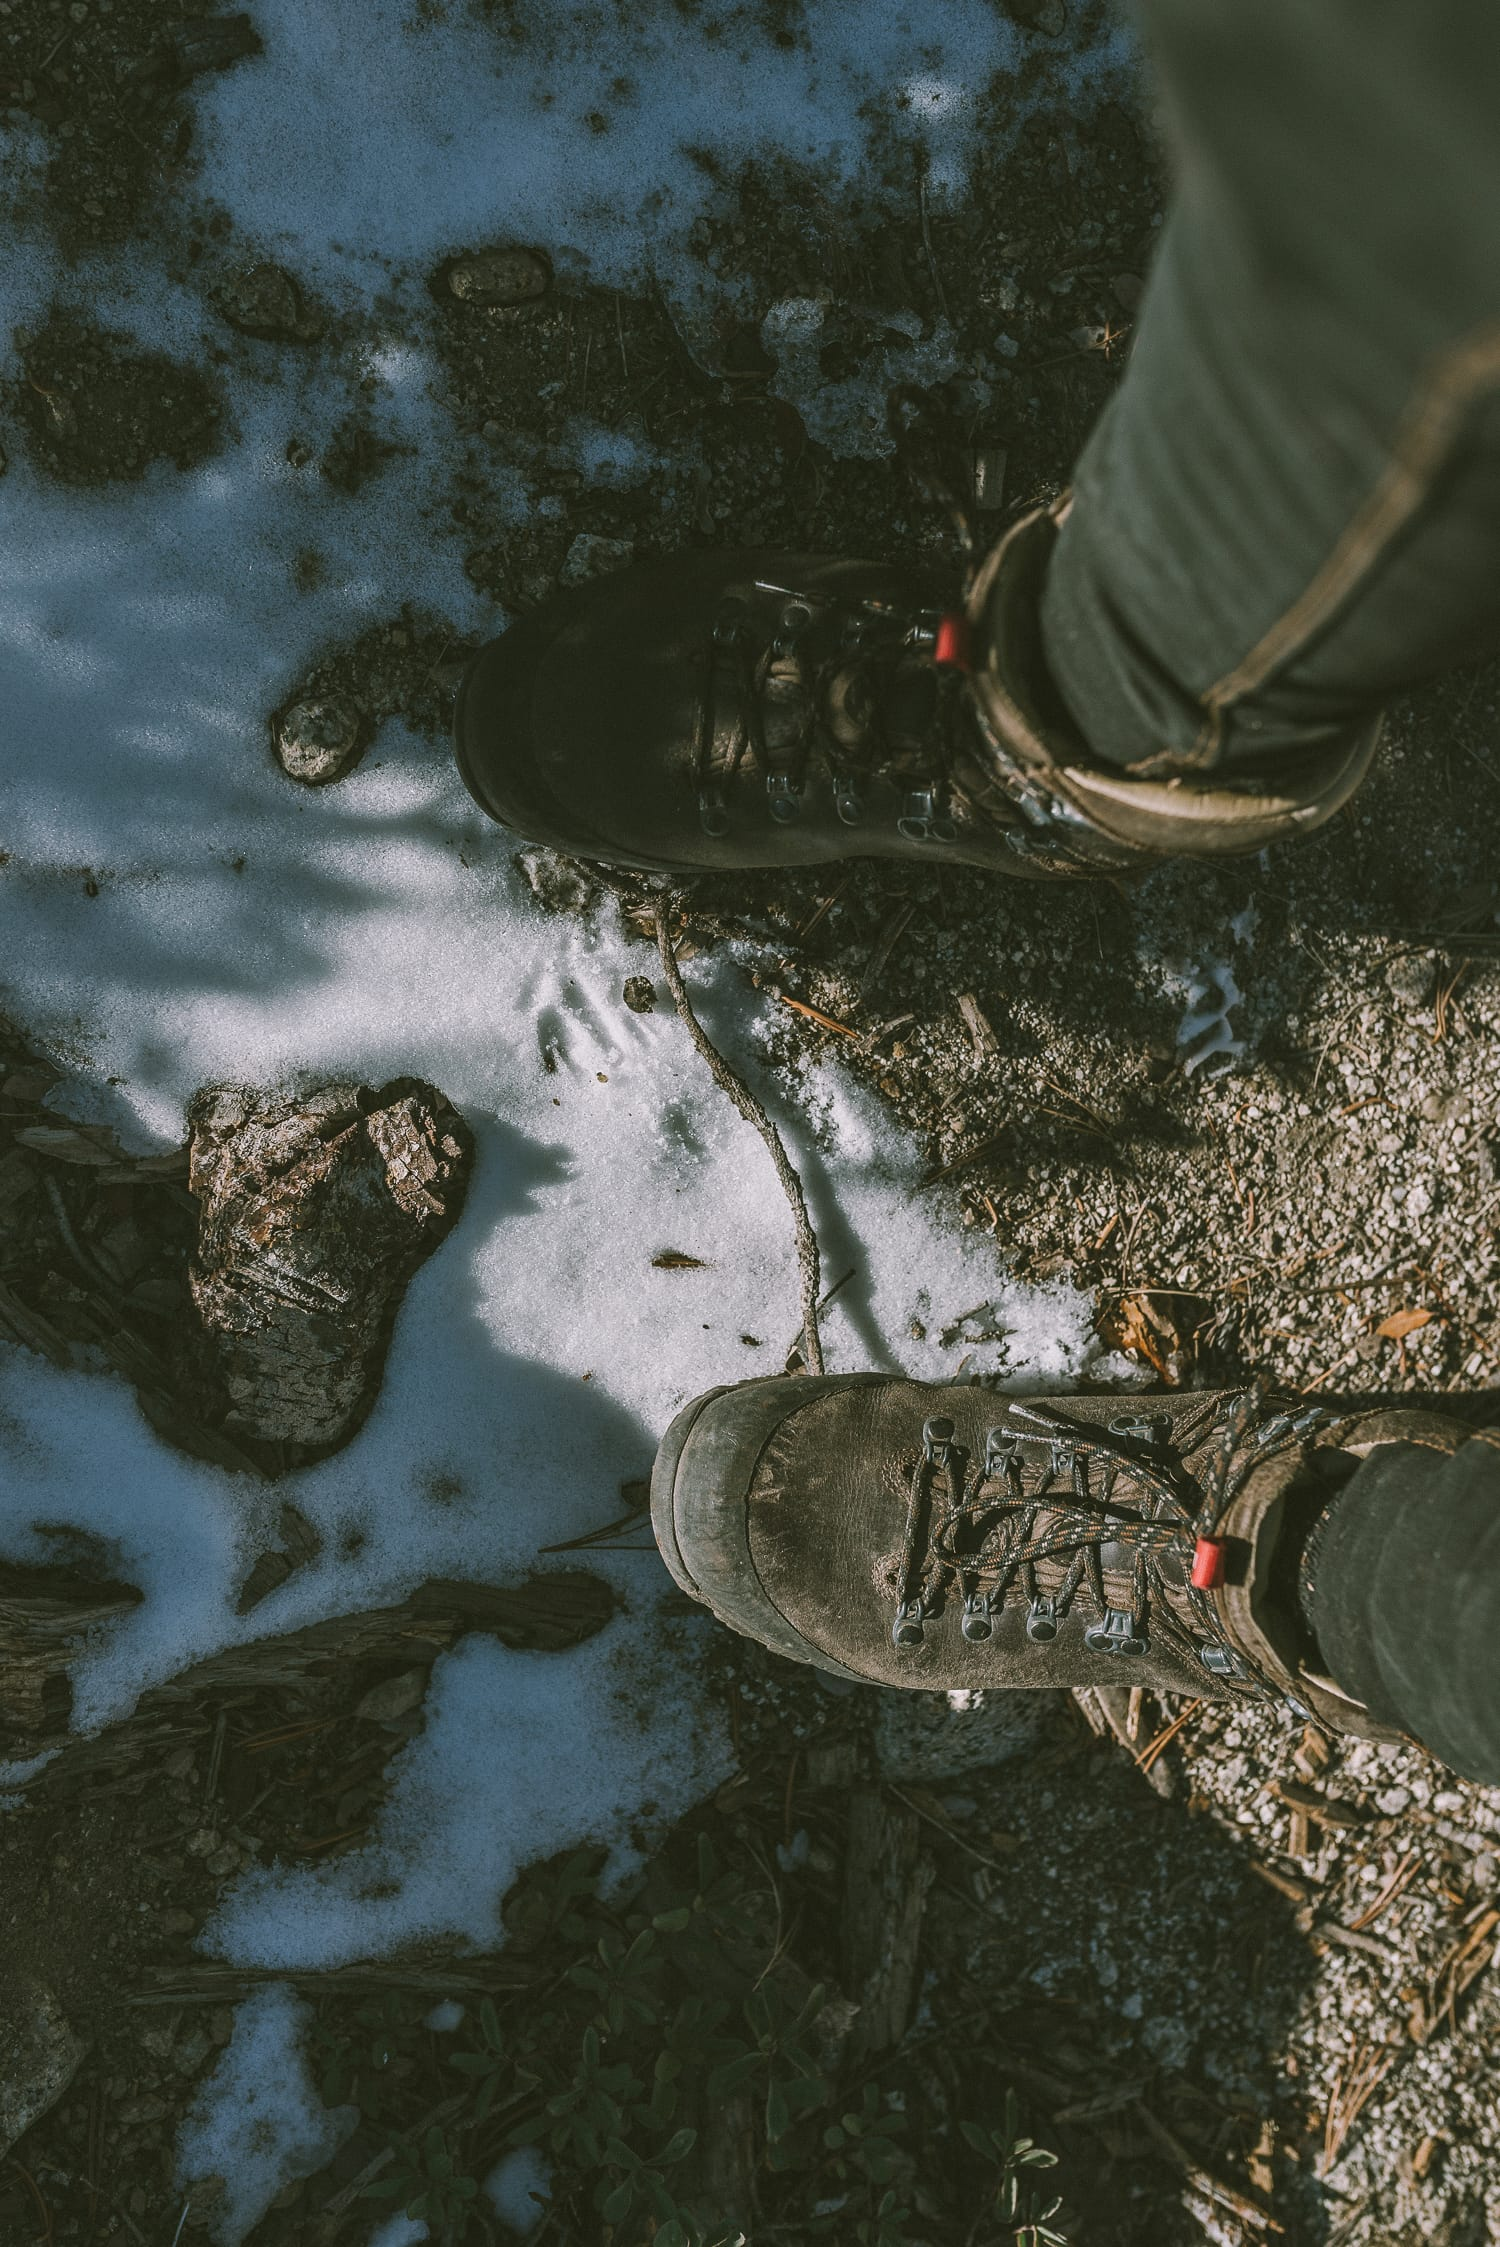 Hiking boots and snow